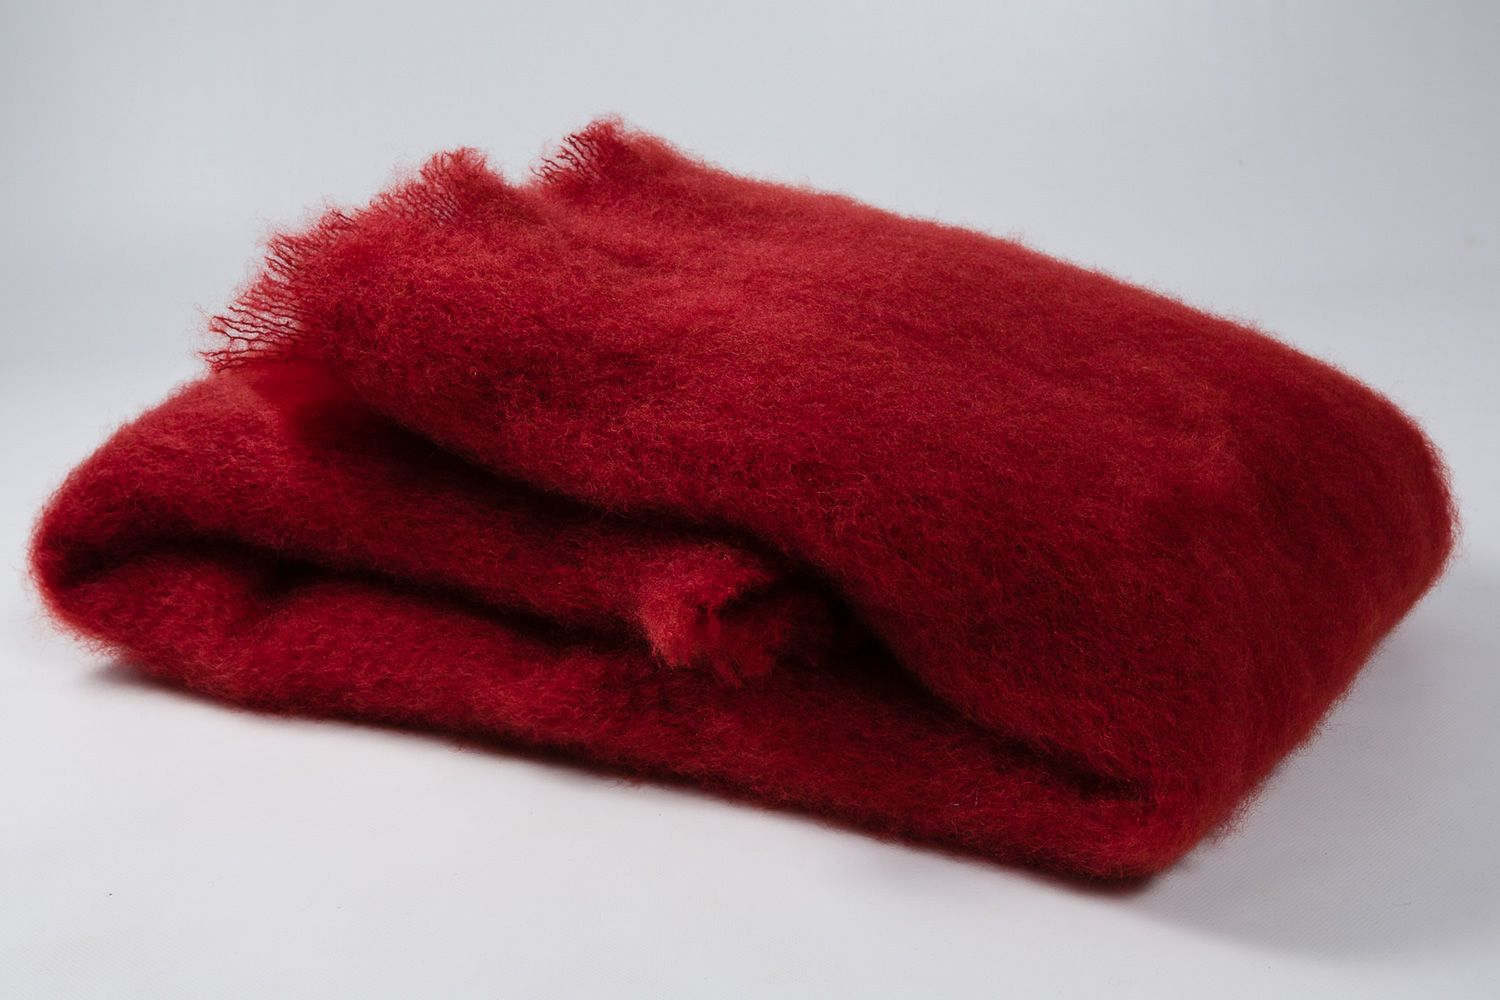 Handcrafted blanket in mohair and wool fabric